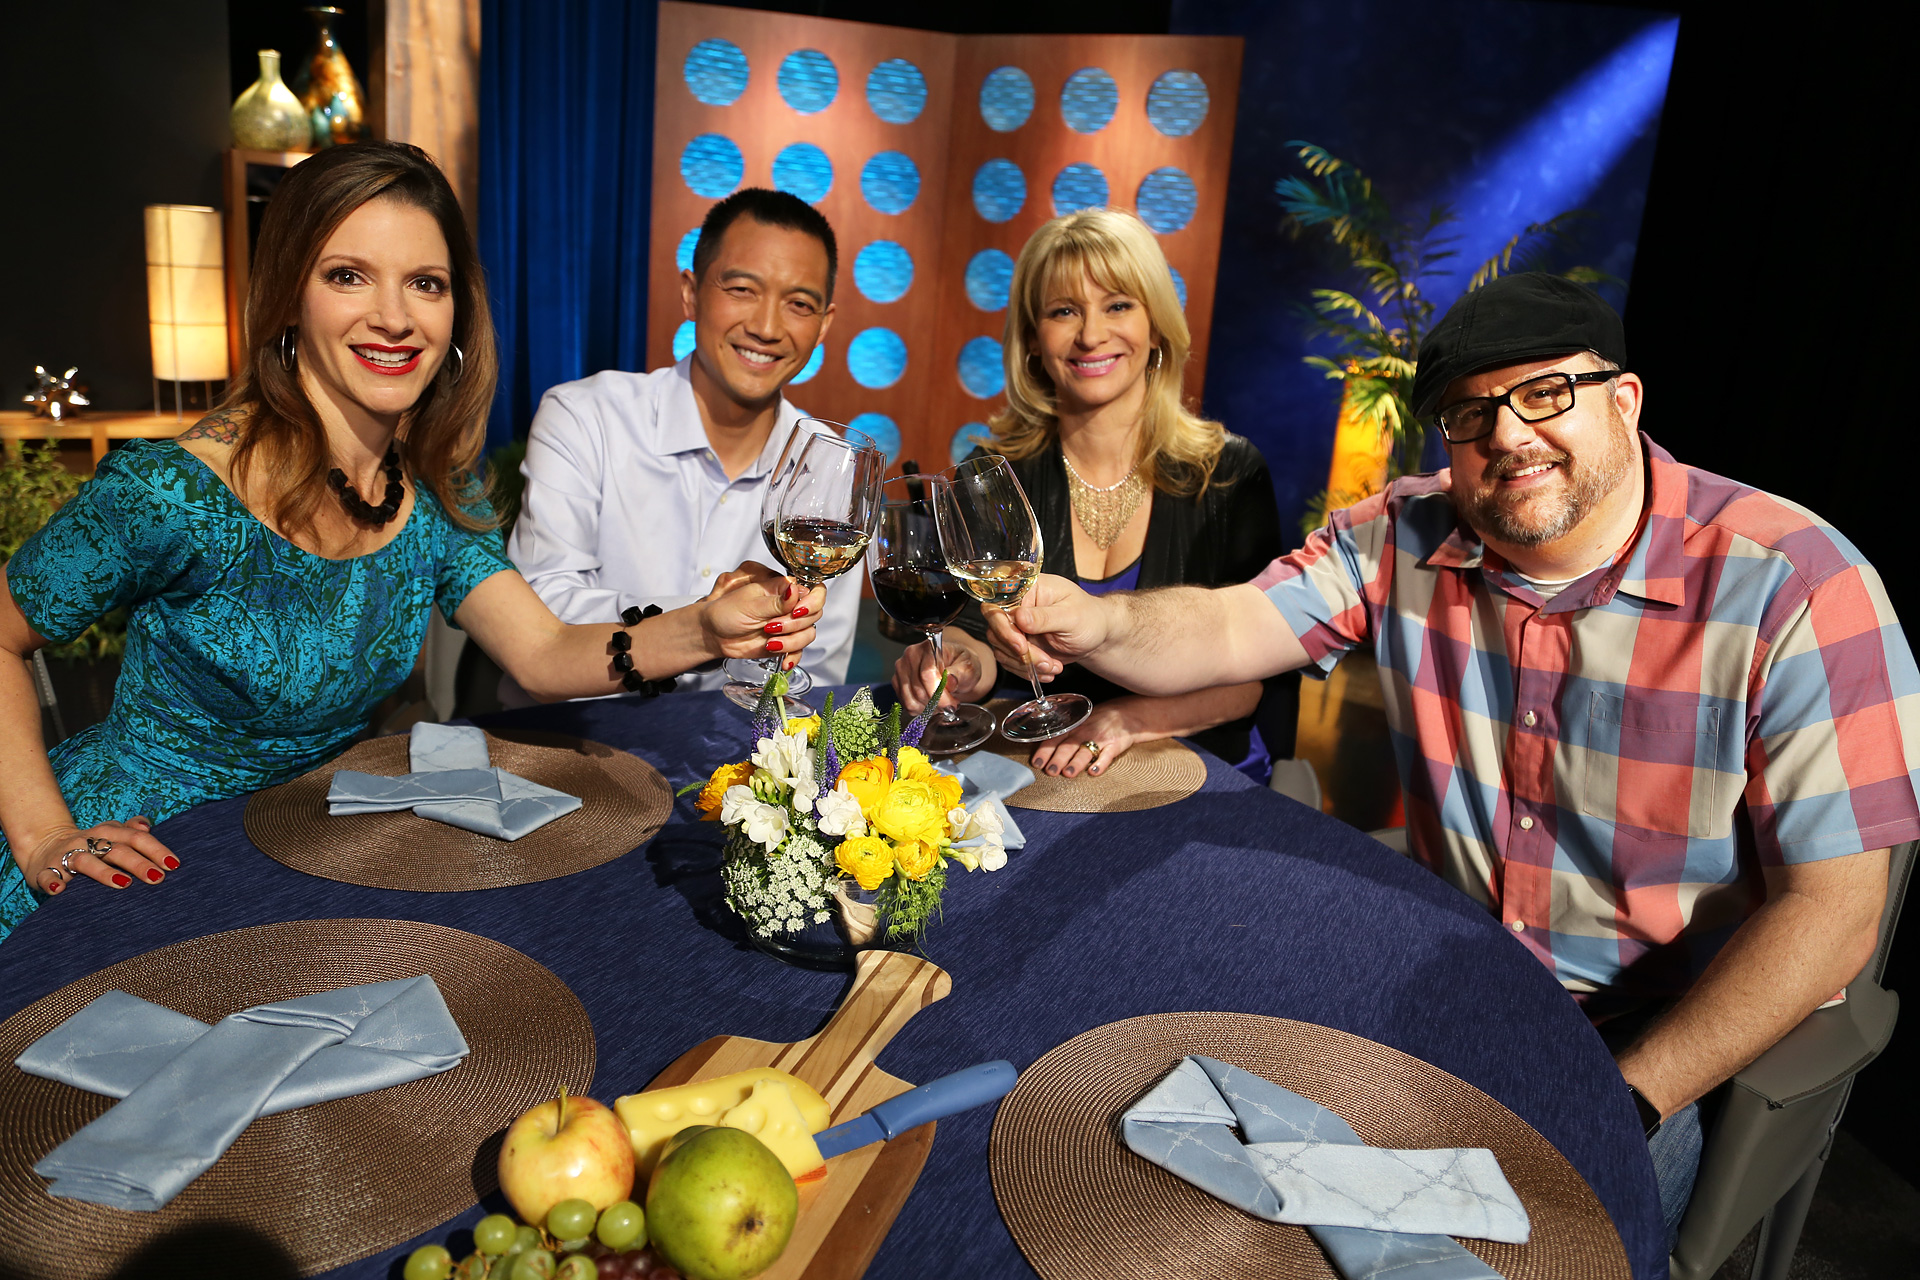 Host Leslie Sbrocco and guests having fun on the set of the episode 9 of season 11.